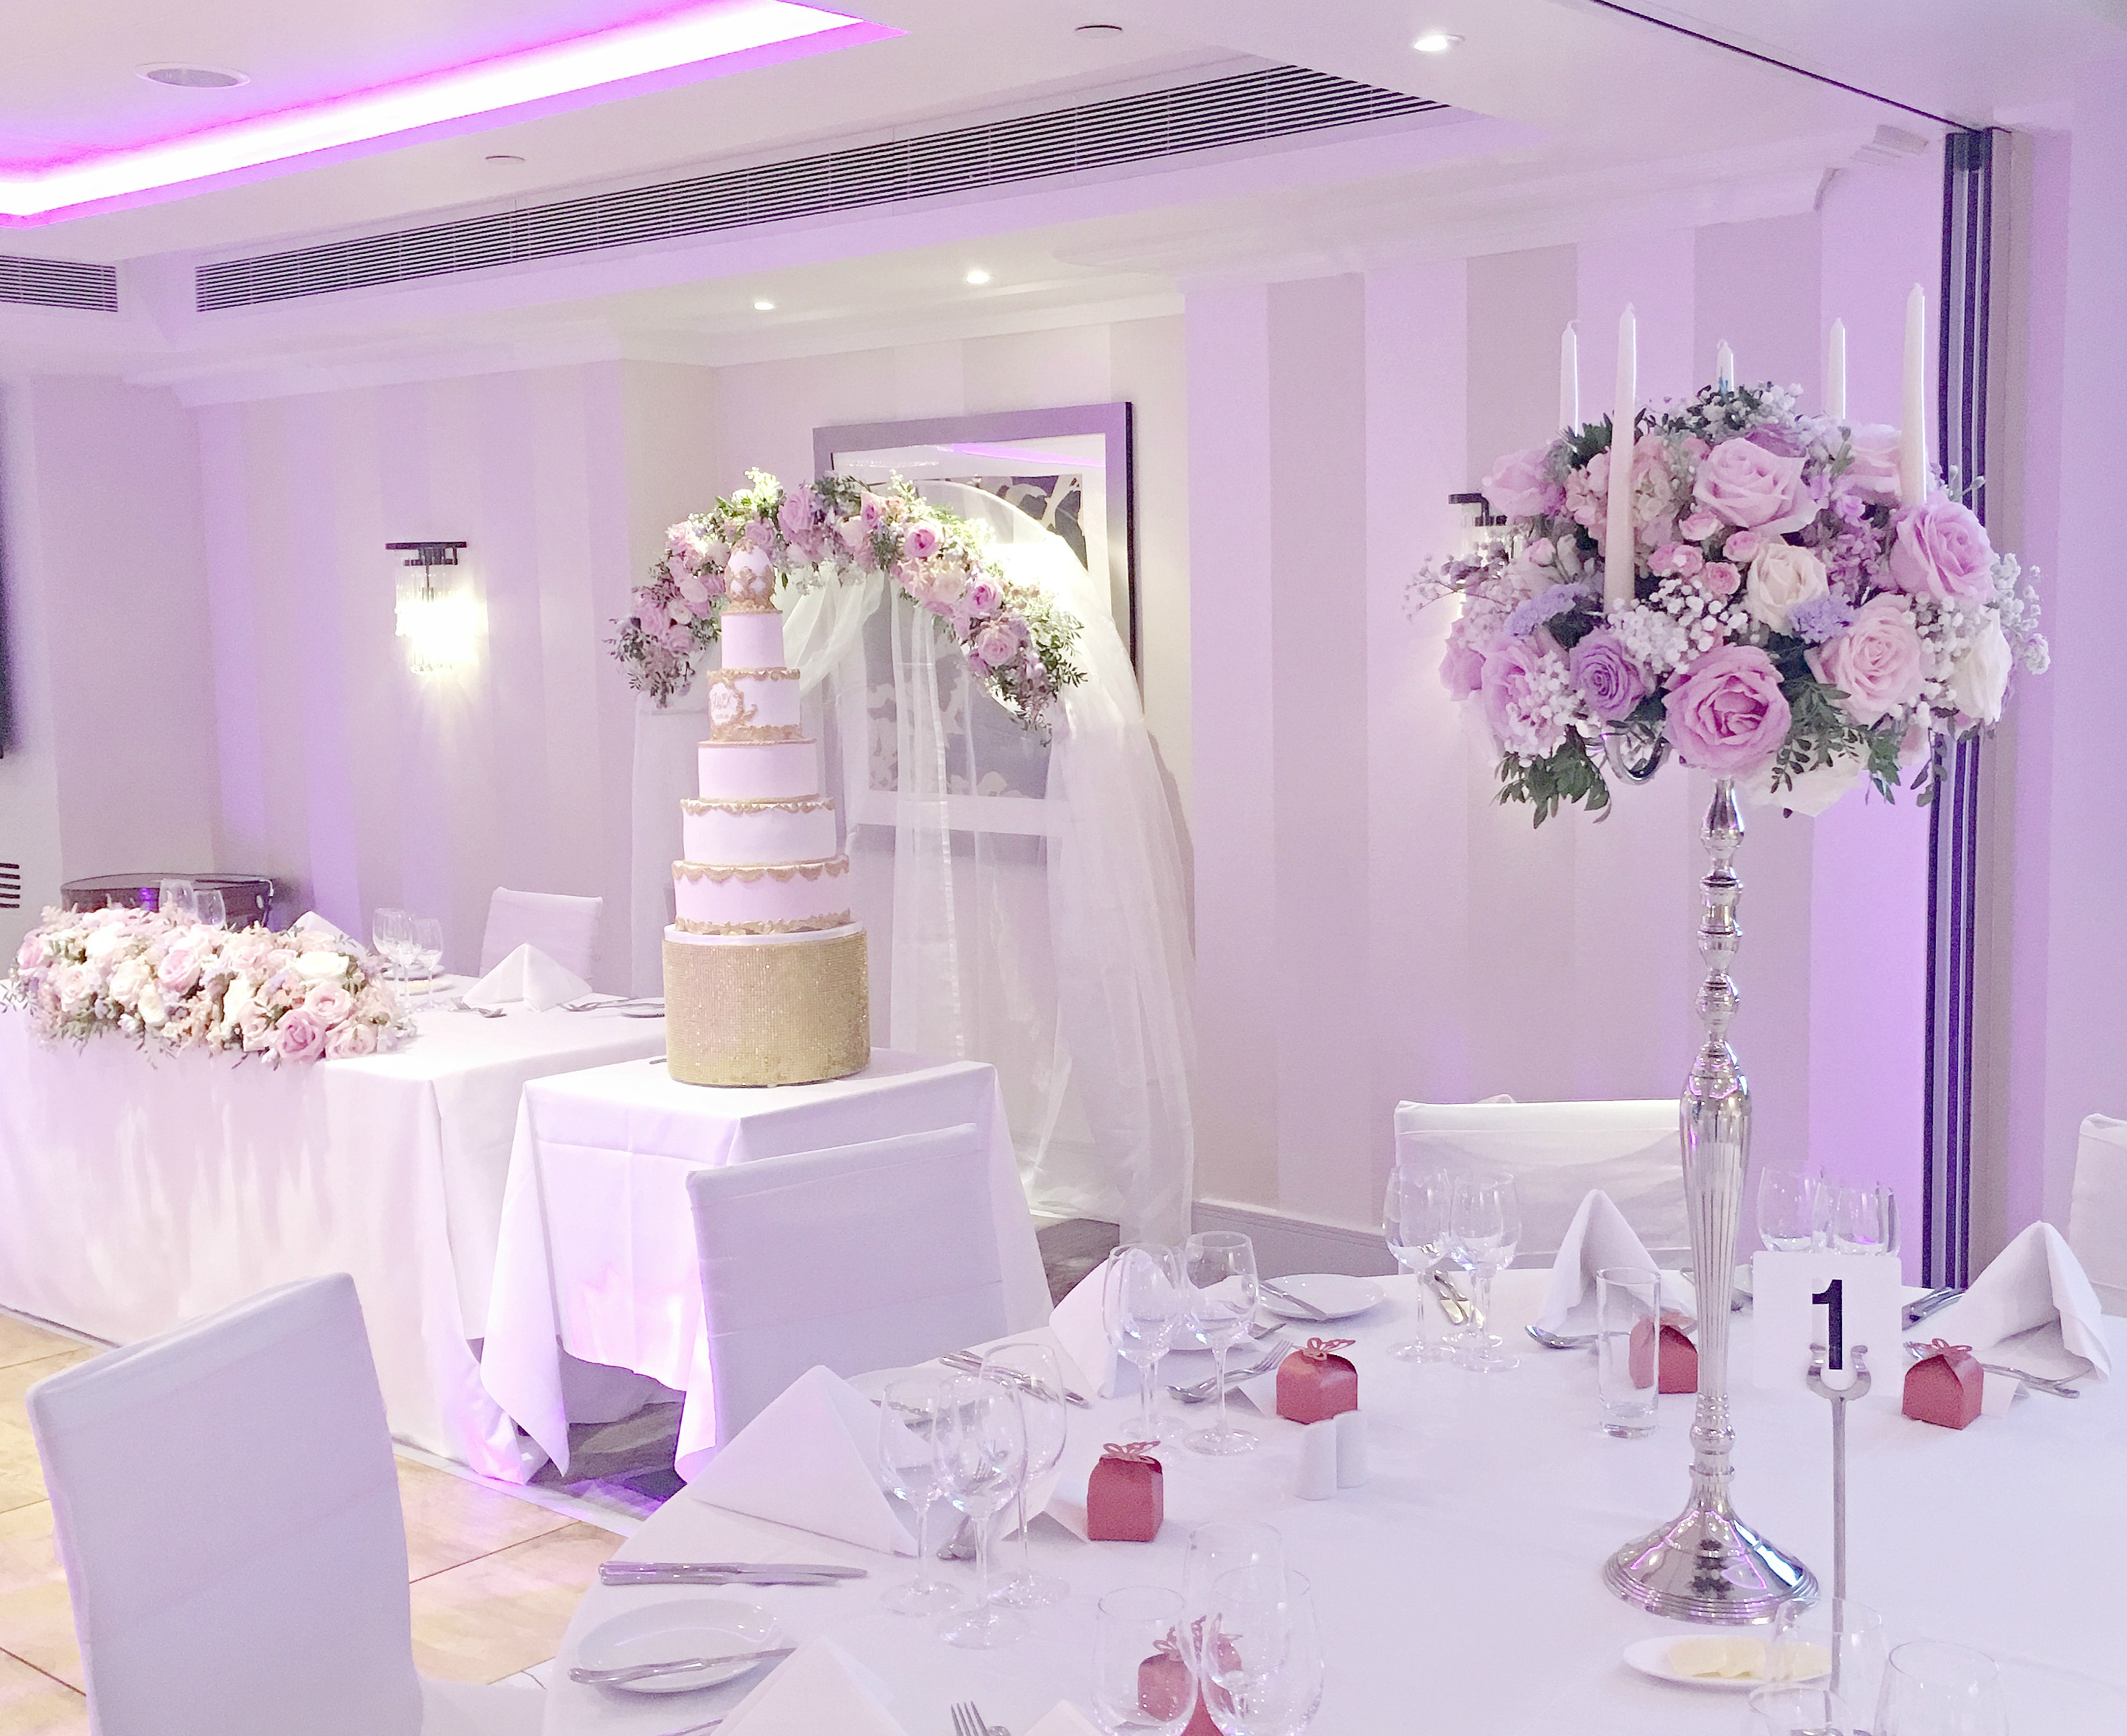 Pink And Lilac Wedding Head Table With Flower Arch Backdrop With